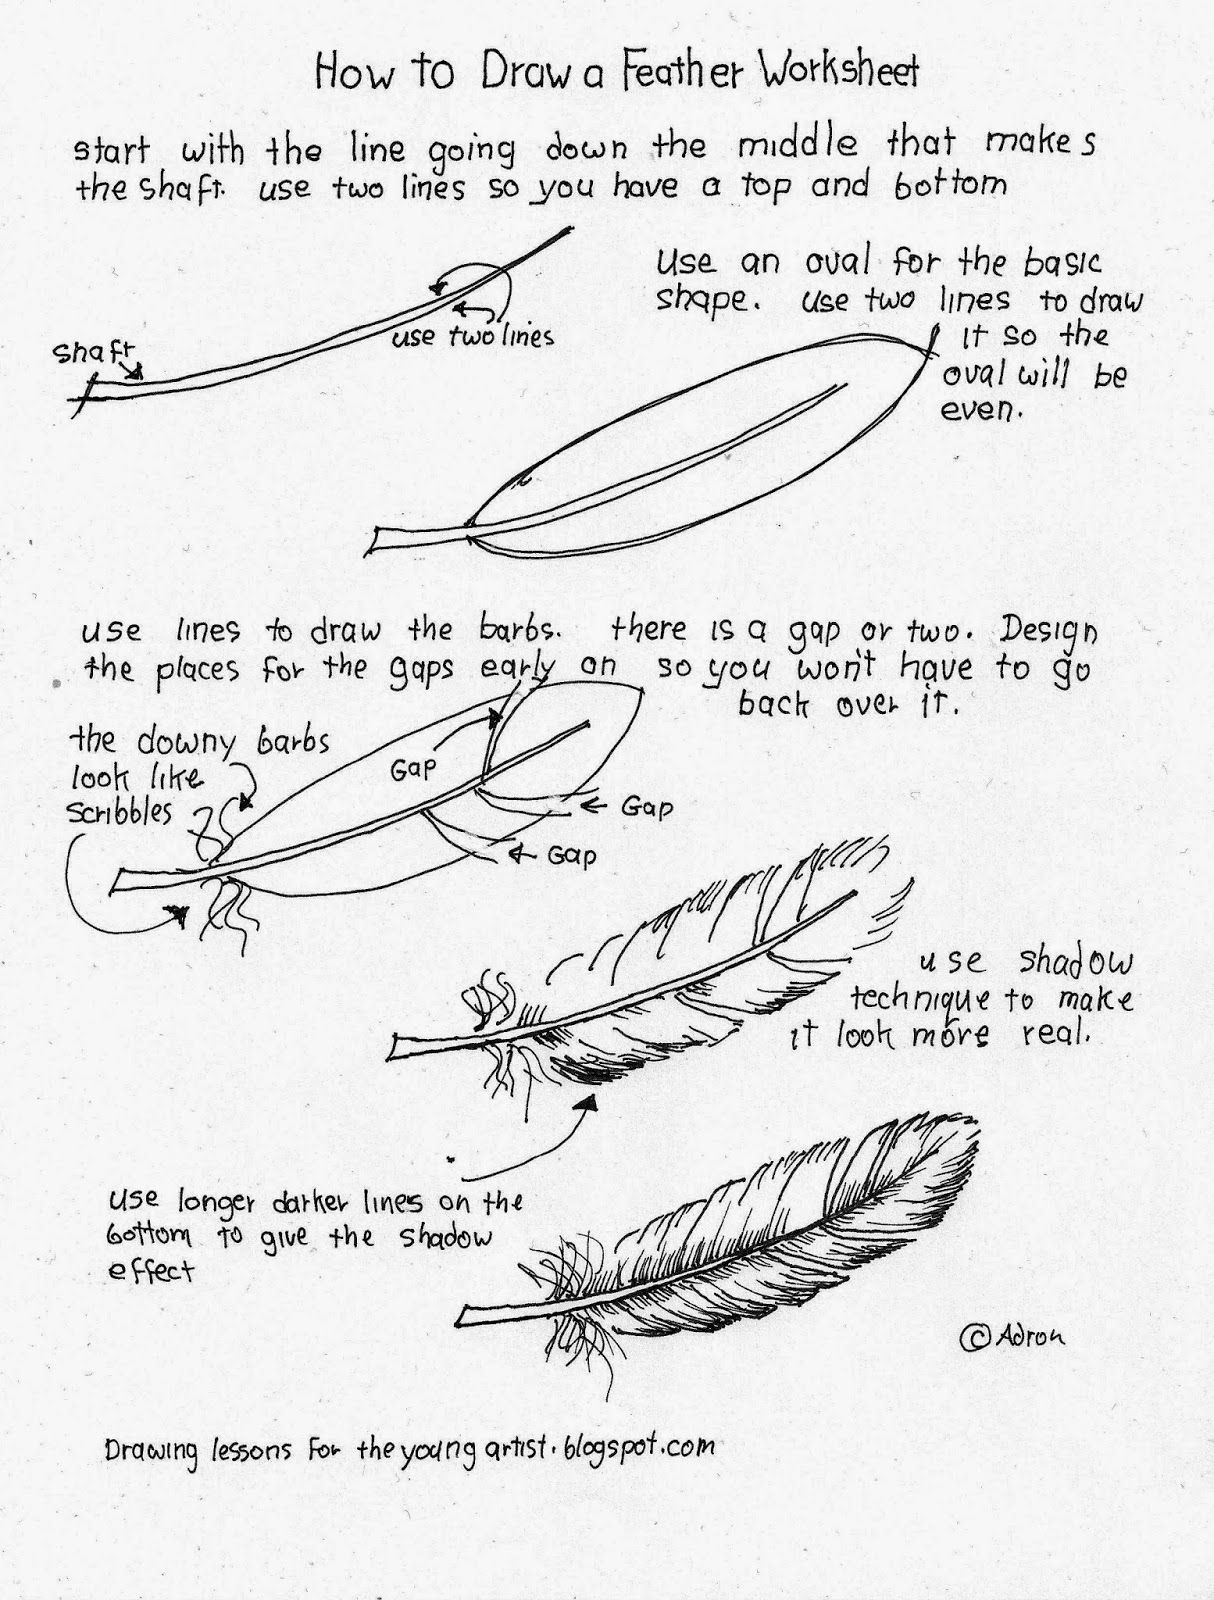 worksheet How To Draw Printable Worksheets how to draw worksheets for the young artist a feather free